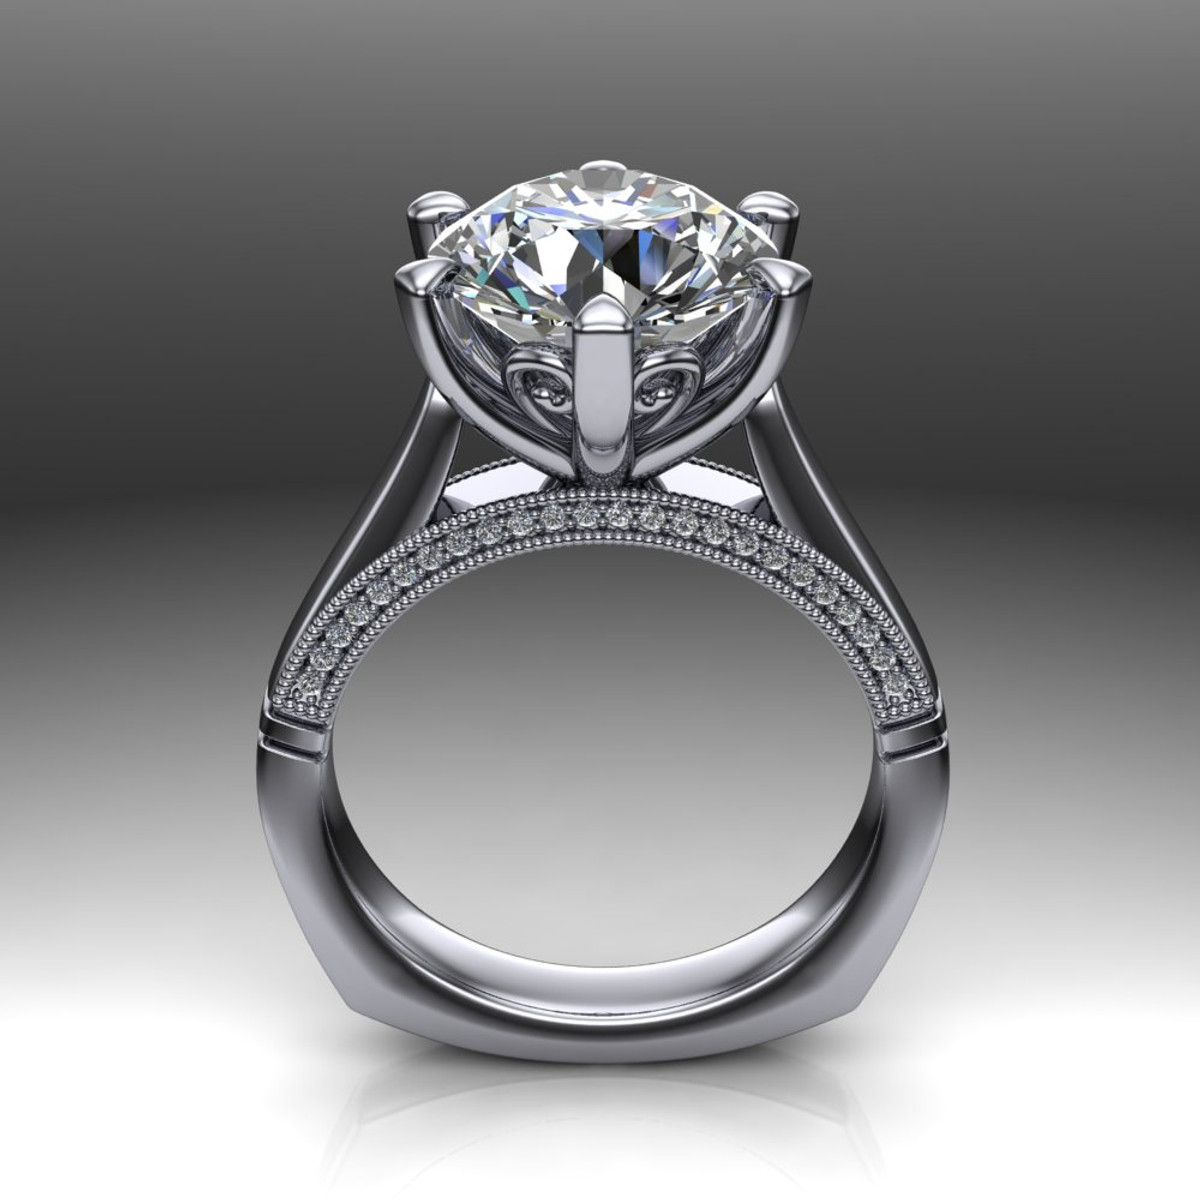 pin i could carat settle for carats my rings engagement ring cut cushion dream